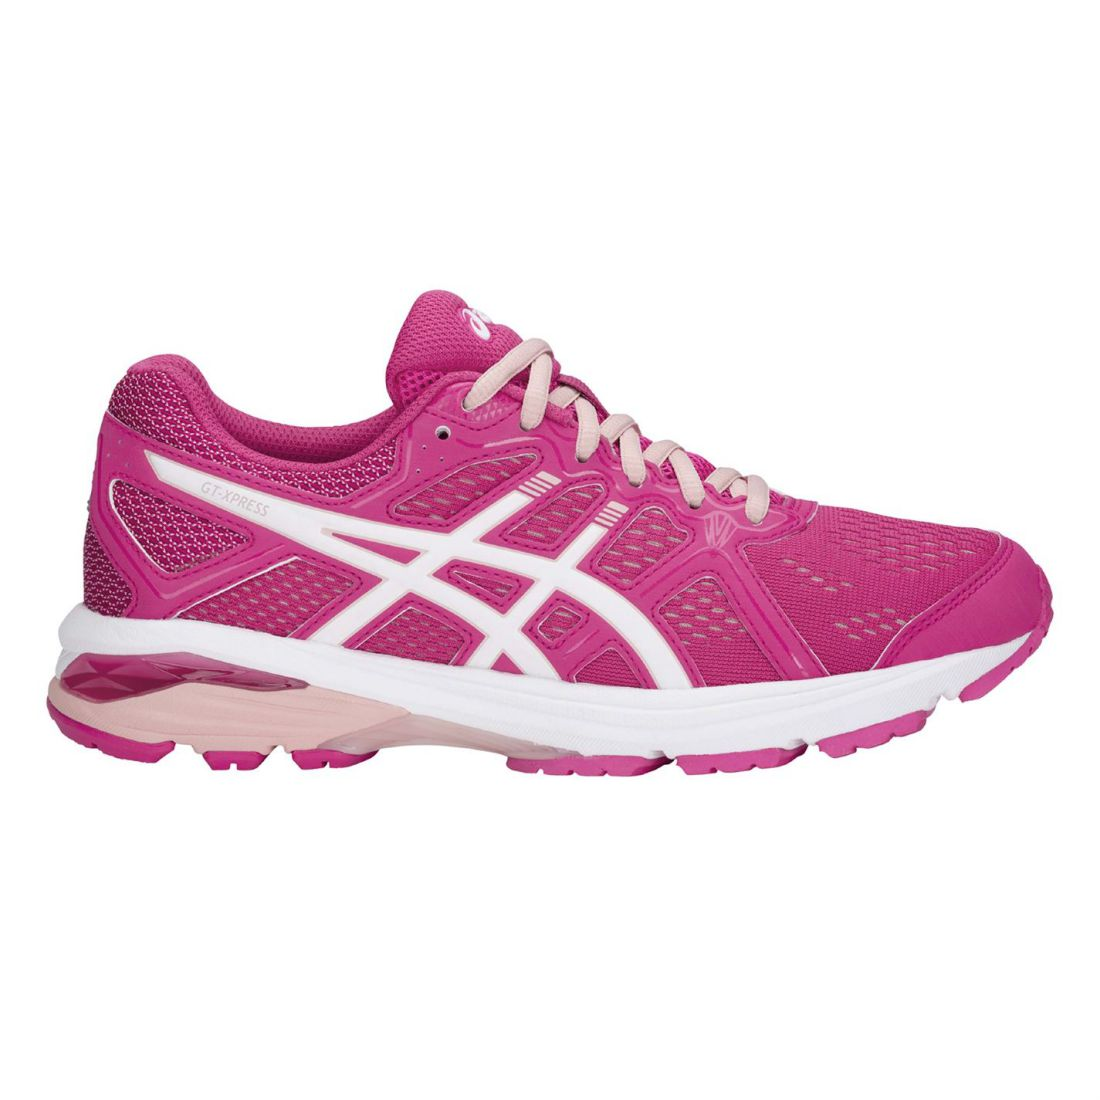 Asics GT Xpress Running shoes Ladies Road Laces Fastened Mesh Upper